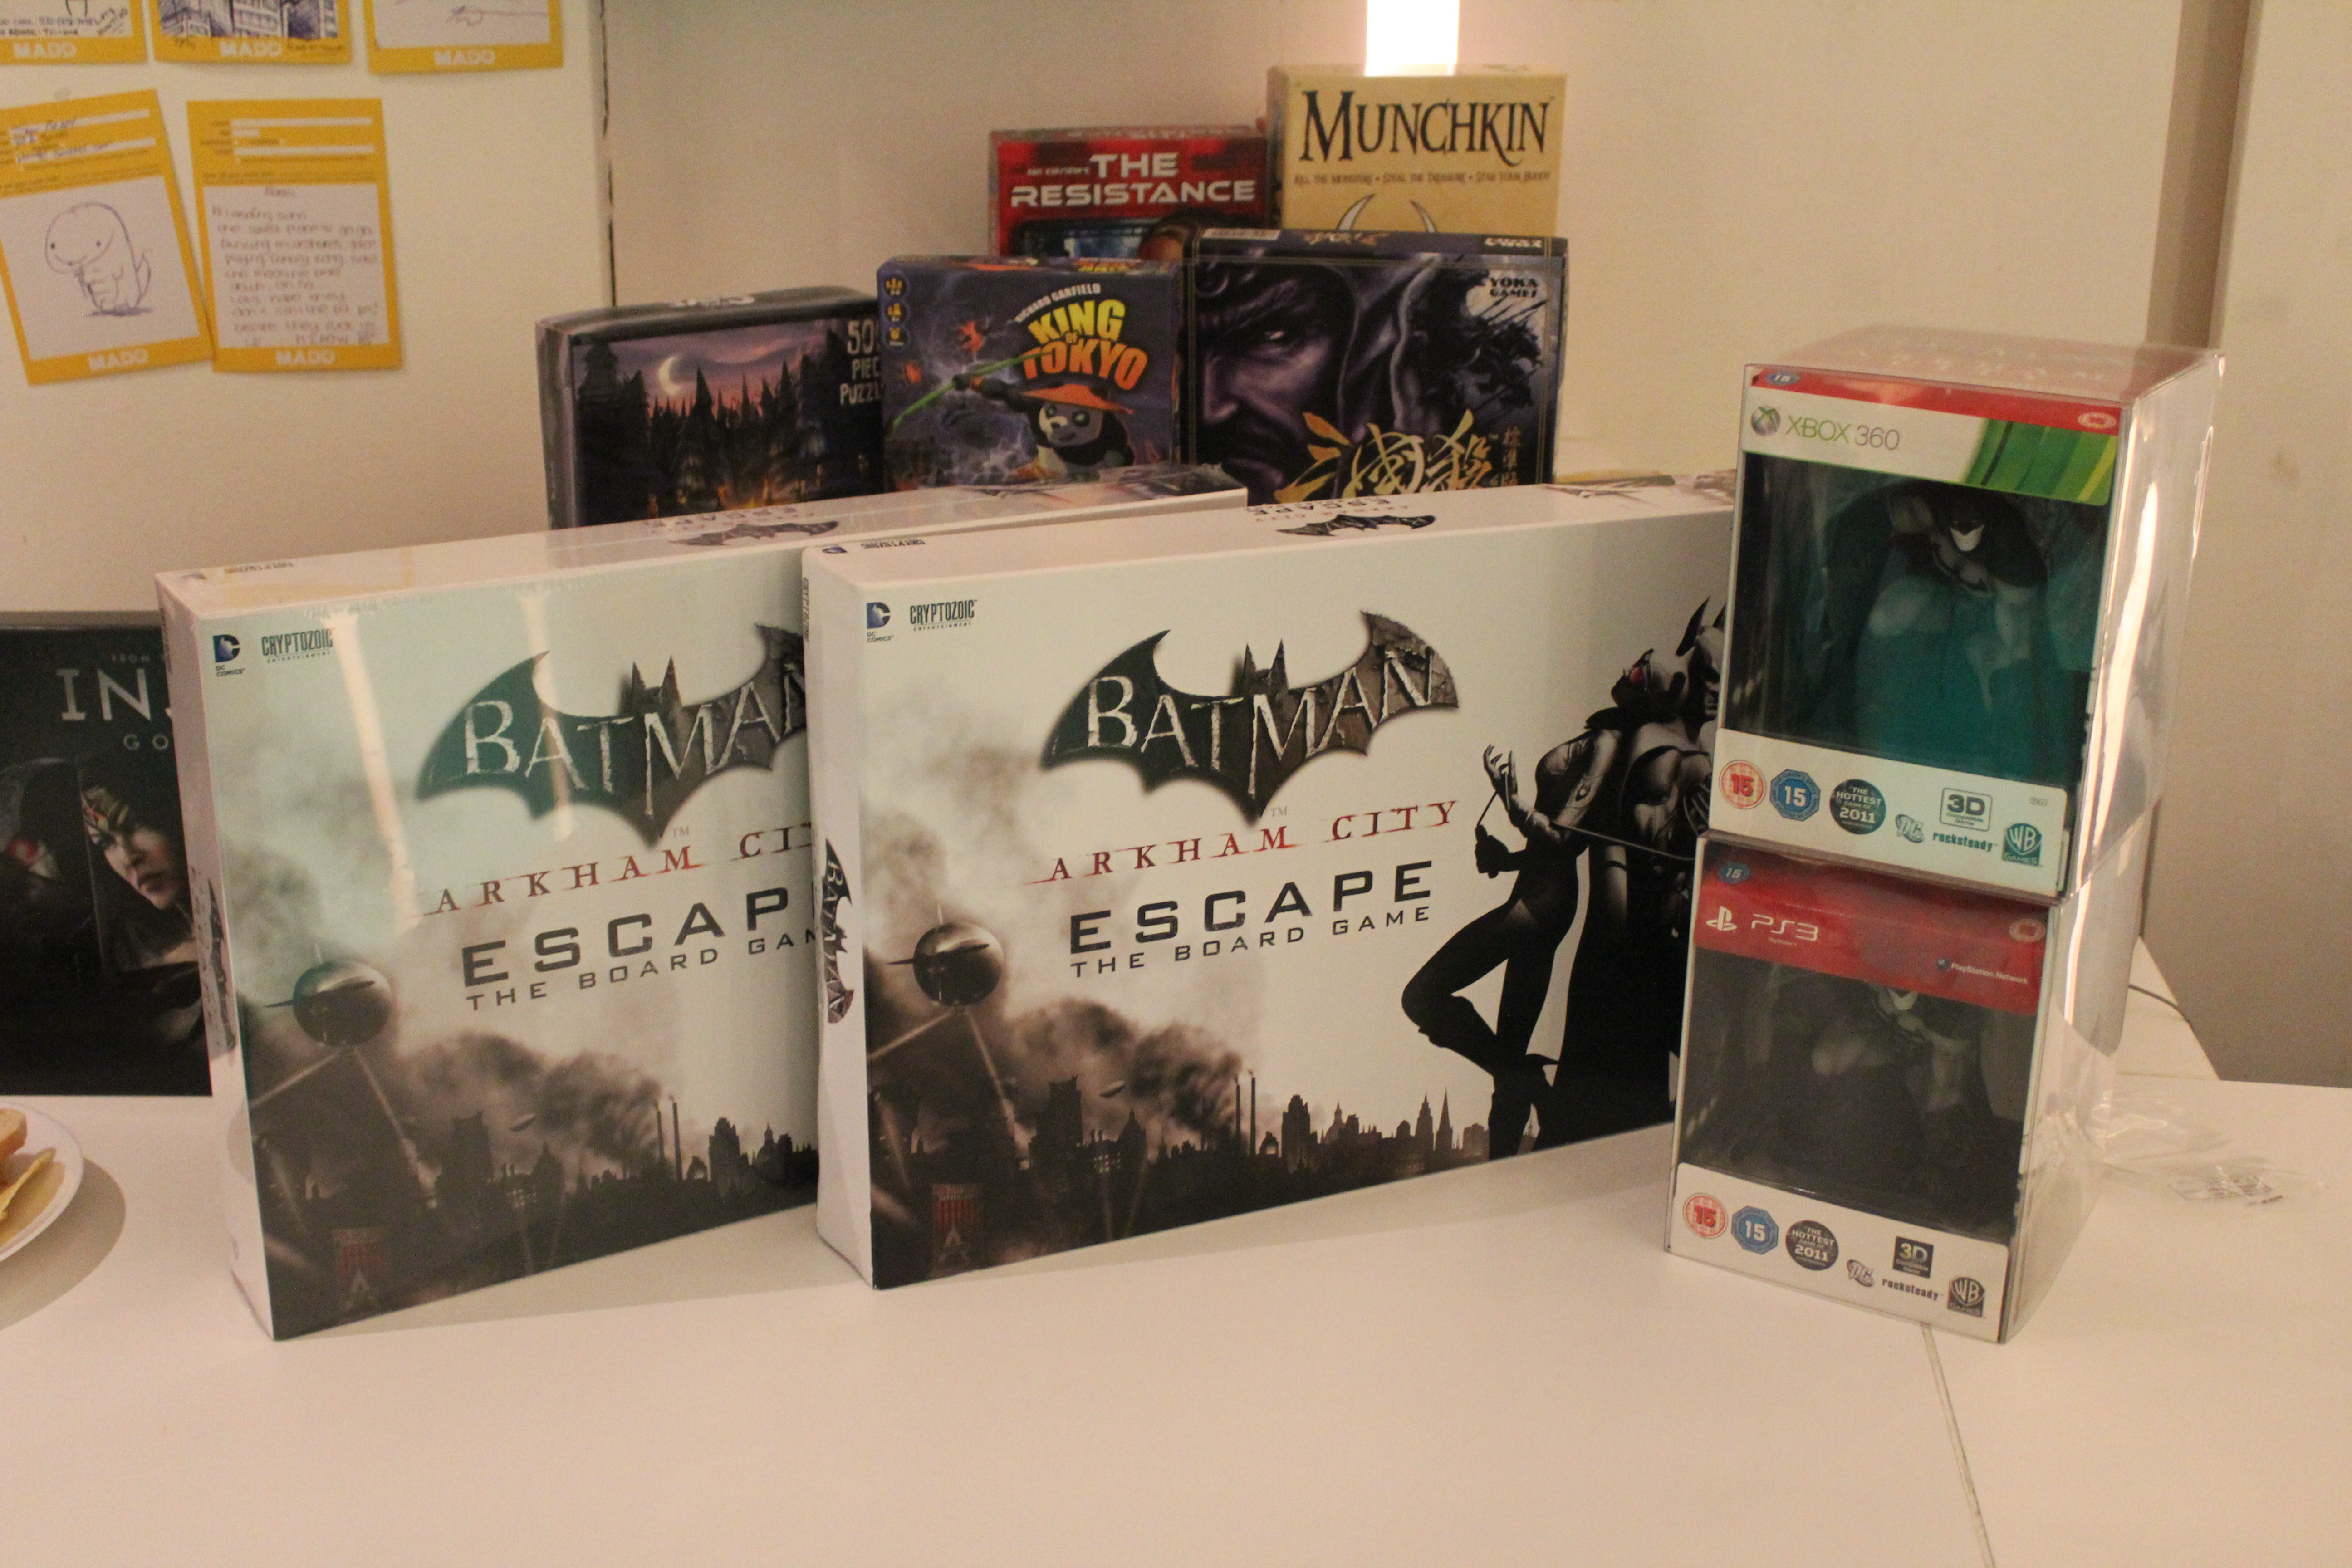 The prizes available to be won included two Batman: Arkham City Special Edition Statues, a press copy of Injustice: Gods Among Us and of course a copy of Batman: Arkham City Escape.